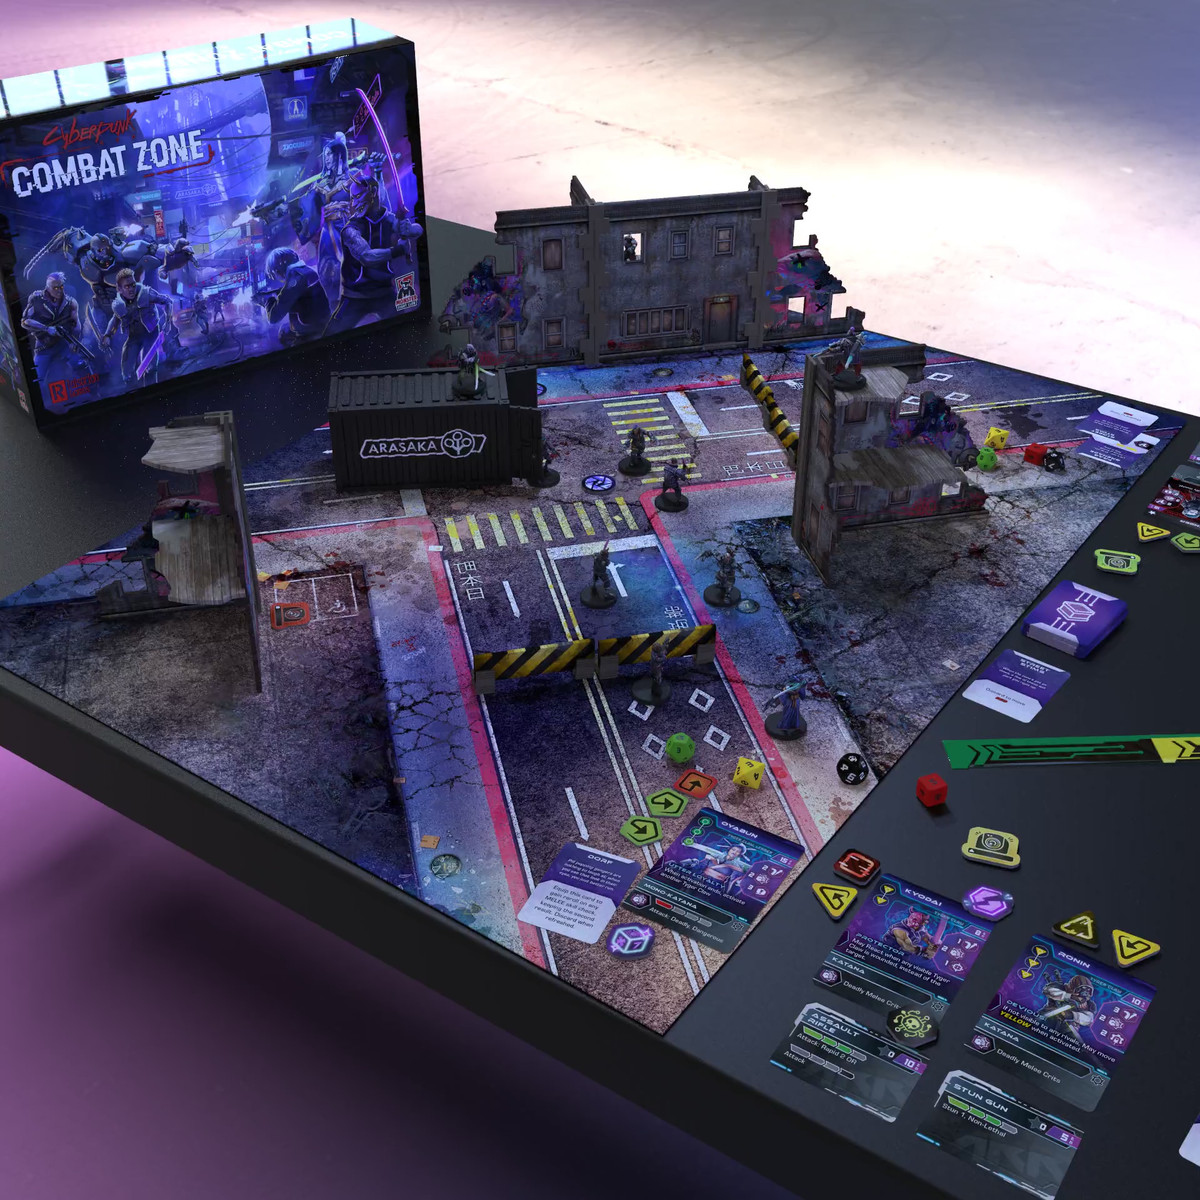 The bits, including cards, dice, and scenery, for Combat Zone laid out for play.